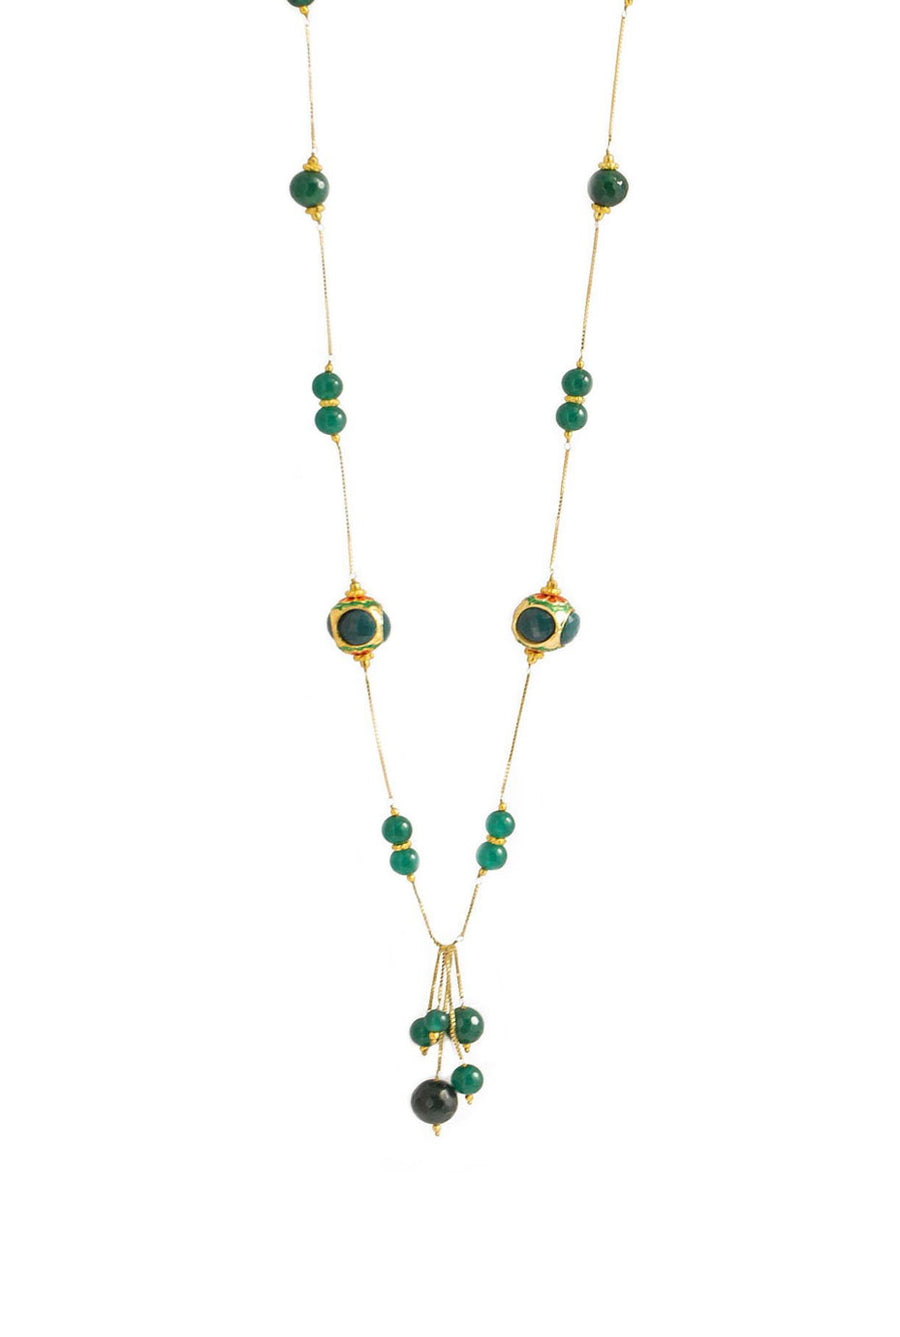 Handcrafted 'Caged' Bead Tassel Necklace with Quartz Green Finish